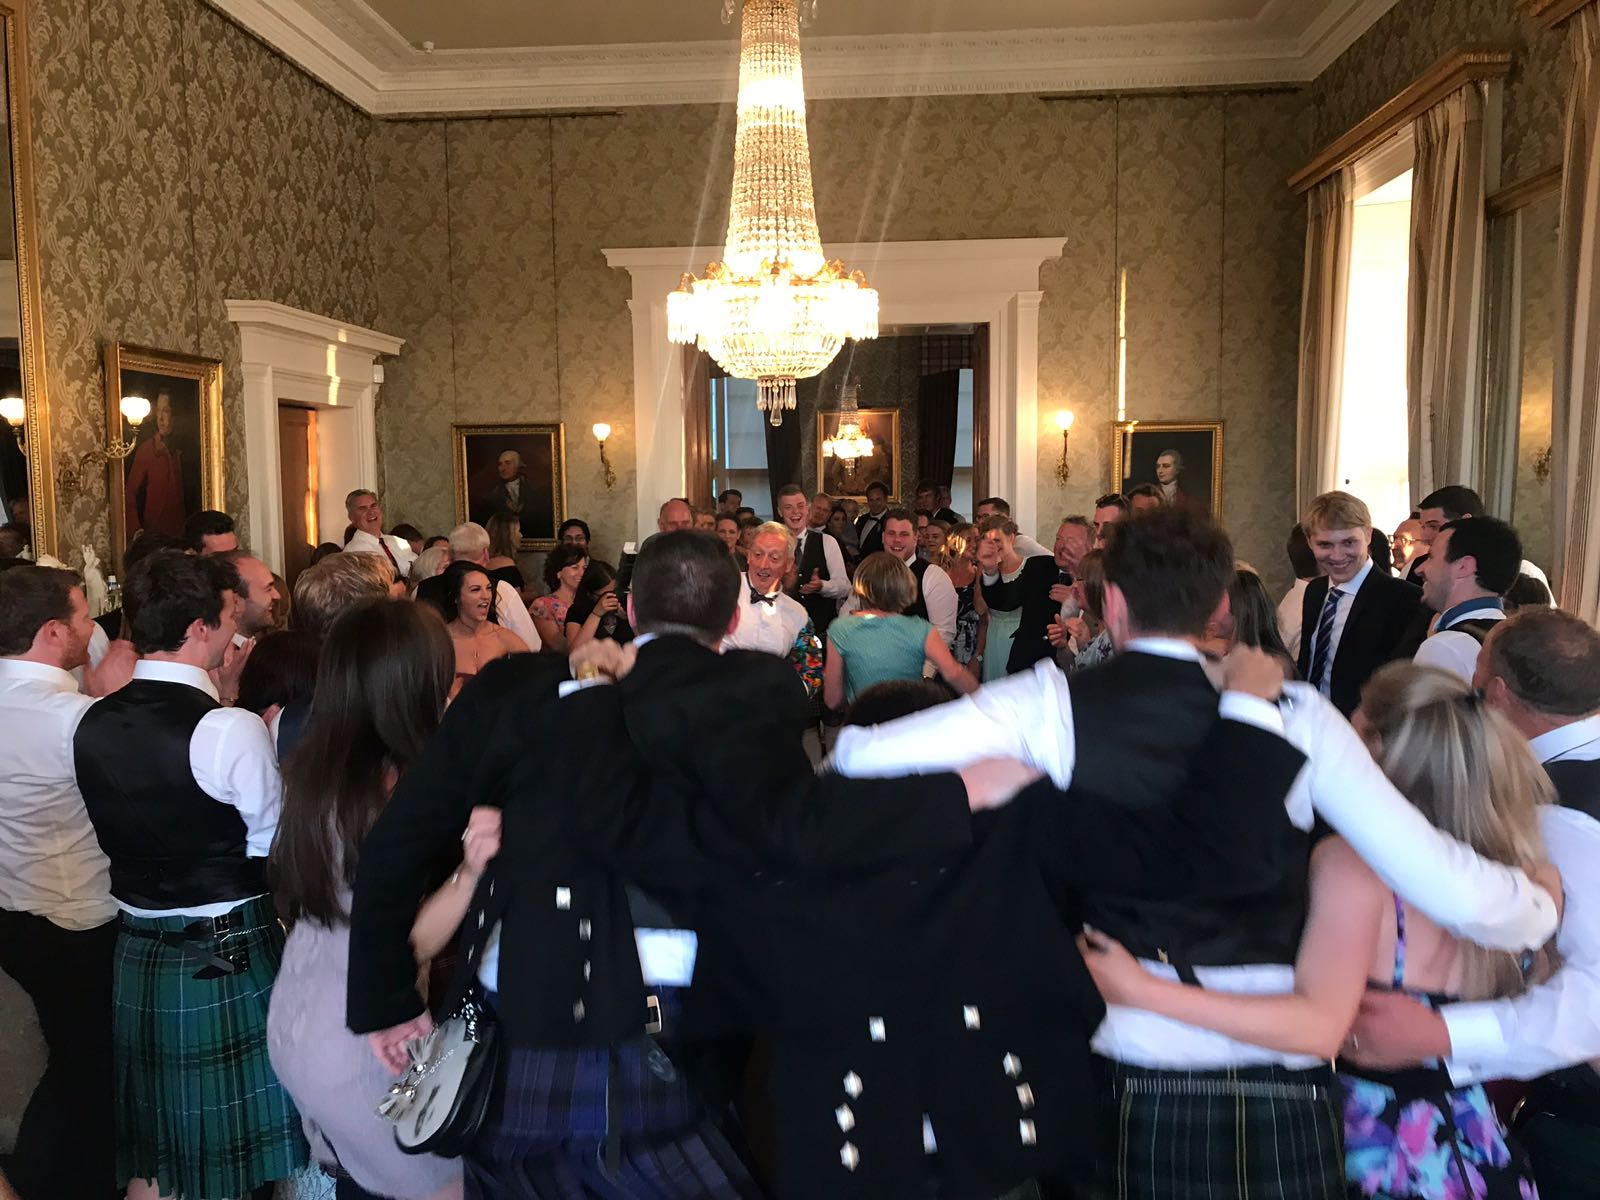 9db7a-jiggered-ceilidh-band-blairquhan-castle-wedding-stand-by-me-harry-megan.jpg